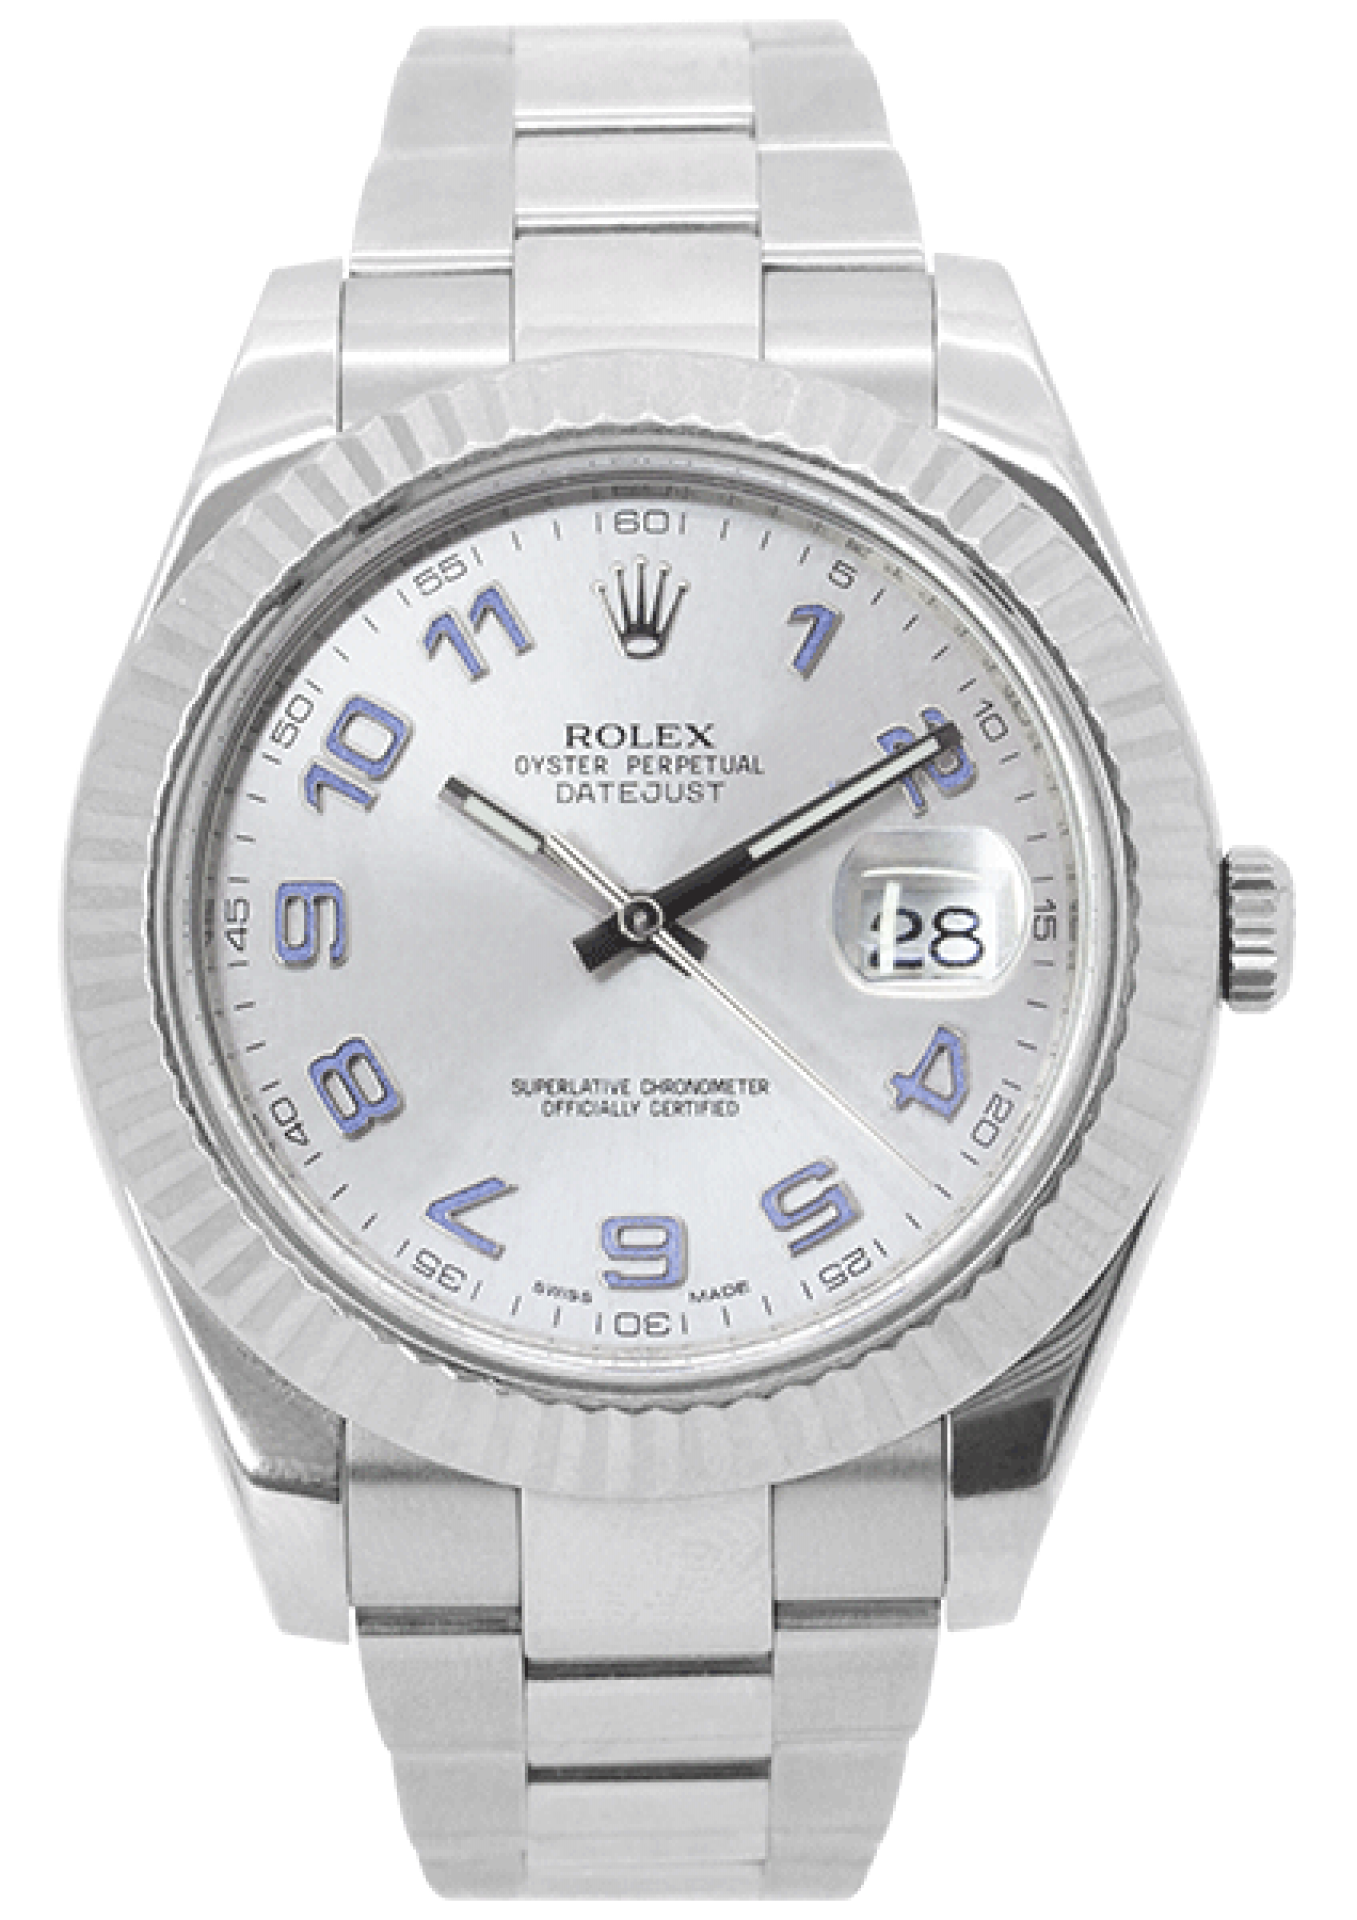 Rolex Oyster Perpetual Datejust II Stainless Steel 116334